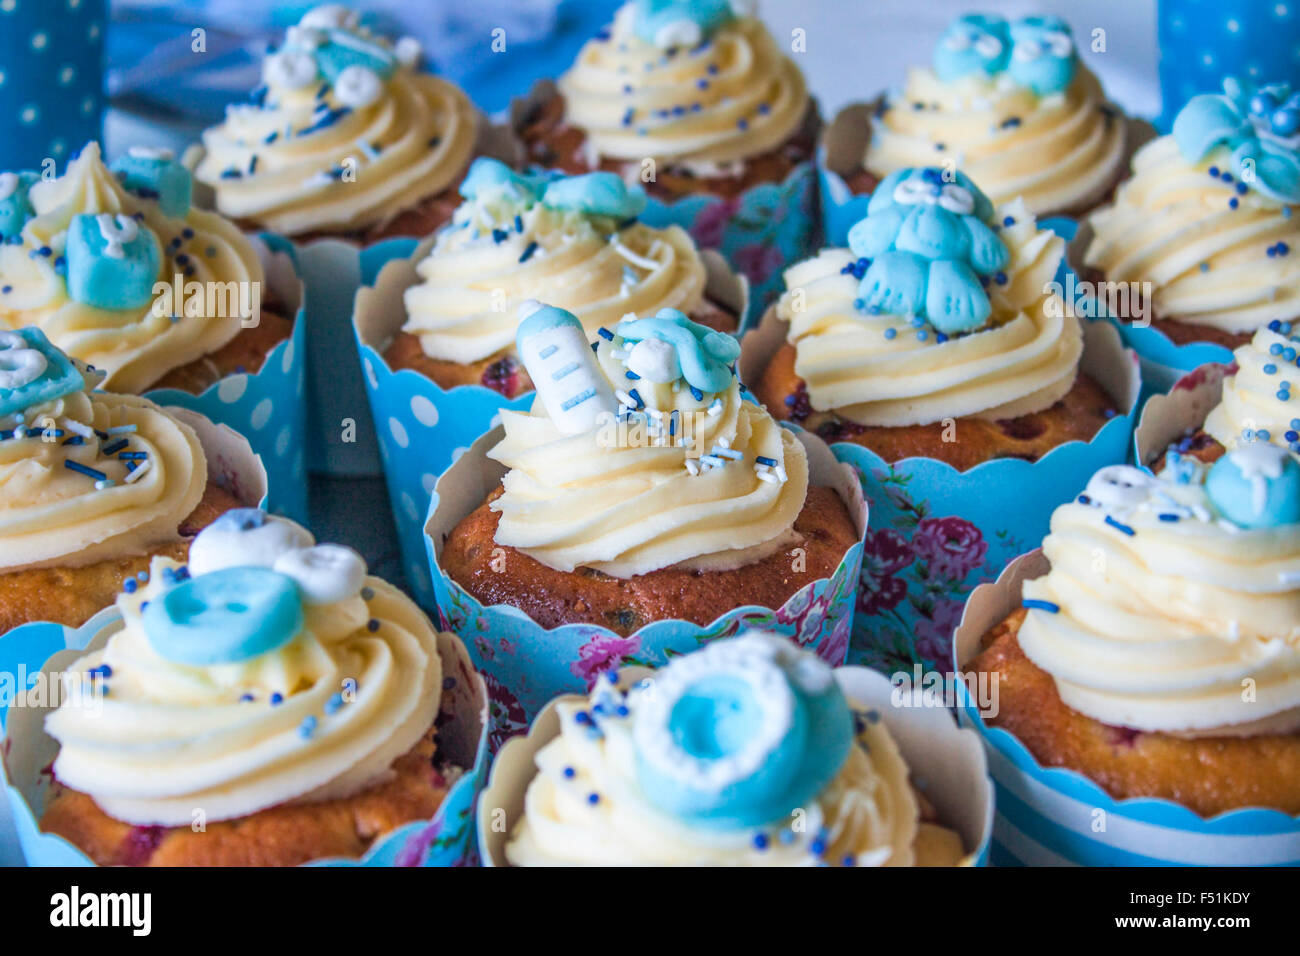 blue baby shower cup cakes with different baby style decorations - Decorating Baby Shower Cupcakes